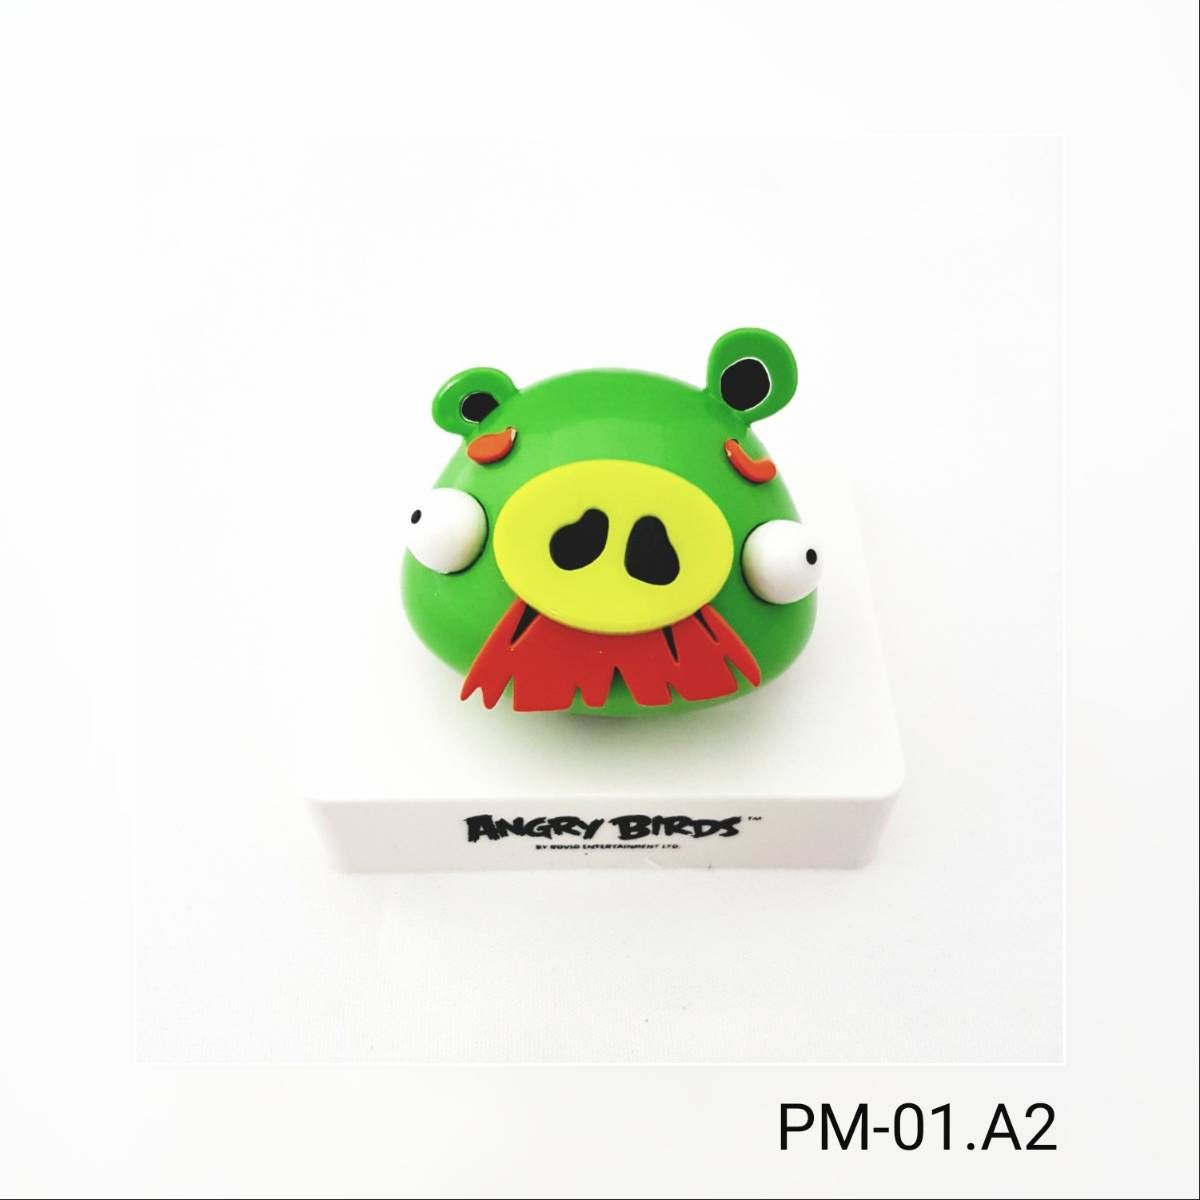 Parfum Mobil Angry Birds Collection Pm-001/a2